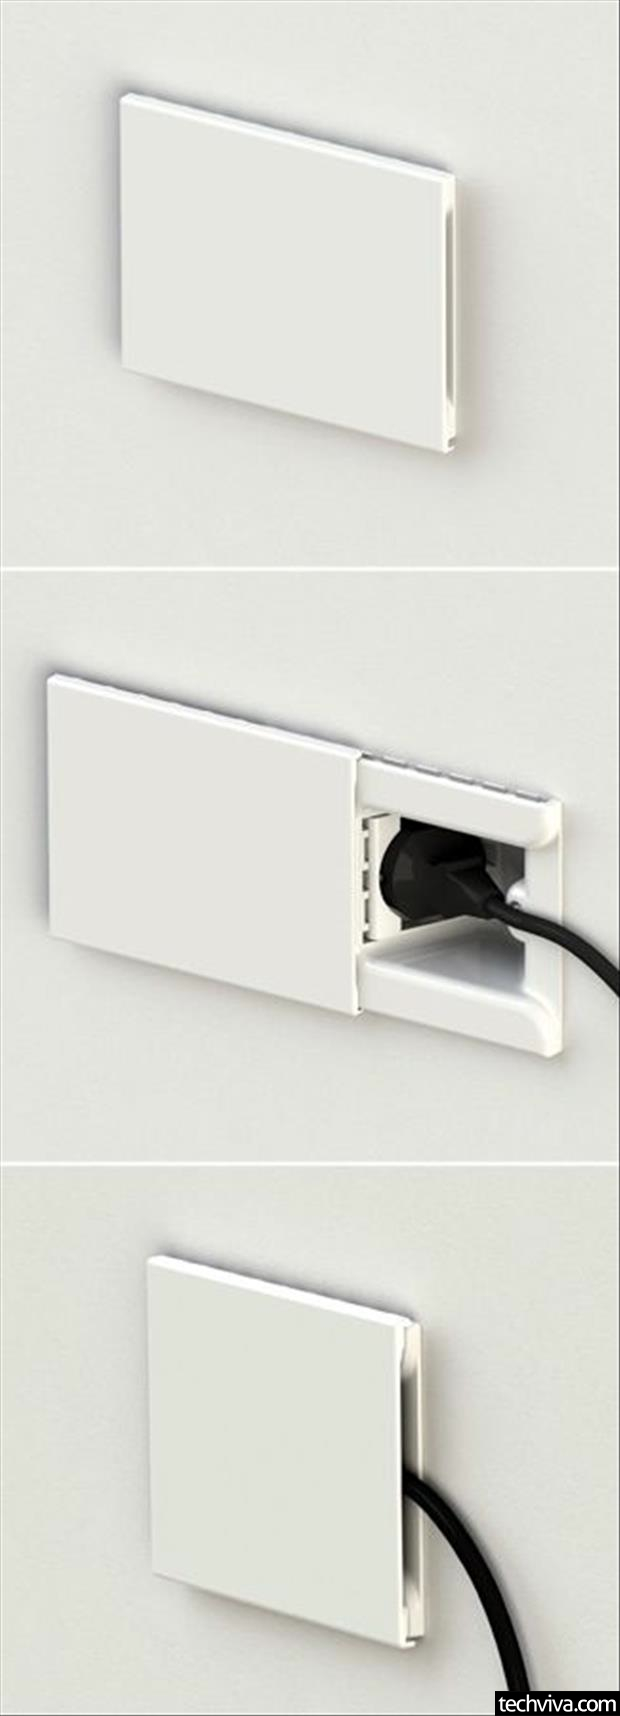 plugin-outlet-covers